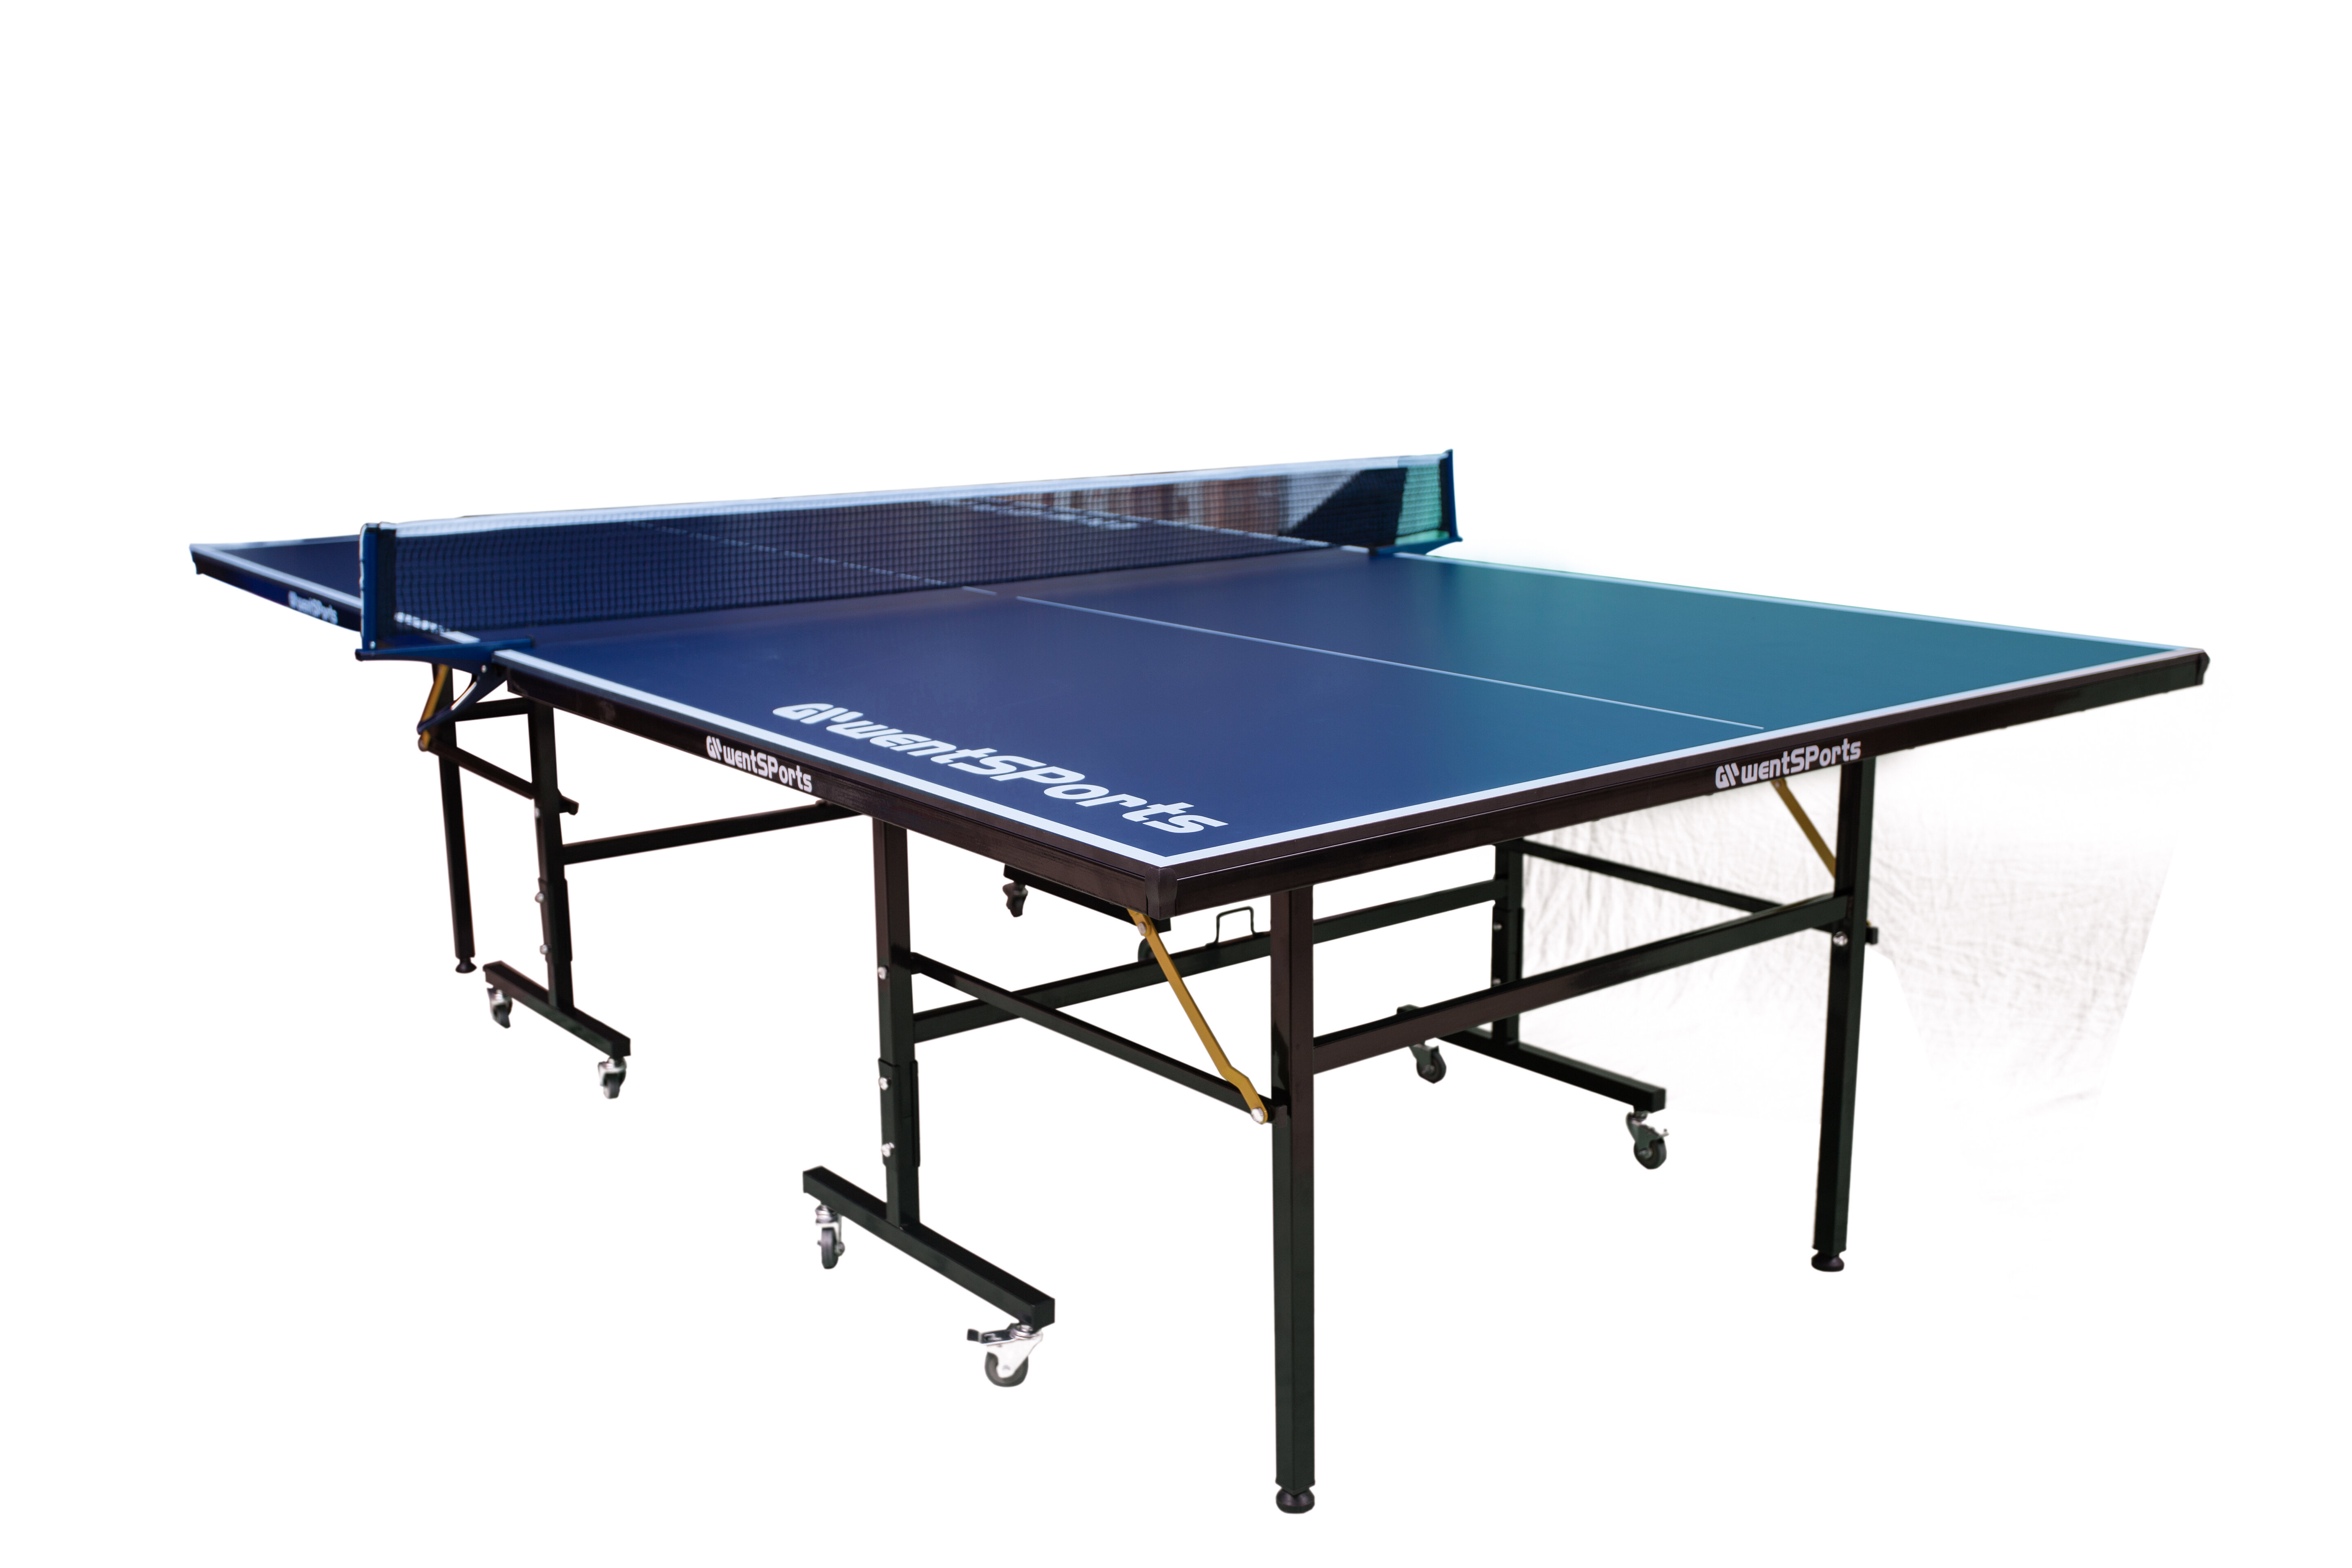 Hossejoy Regulation Size Foldable Indoor Outdoor Table Tennis Table With Paddles And Balls Wayfair